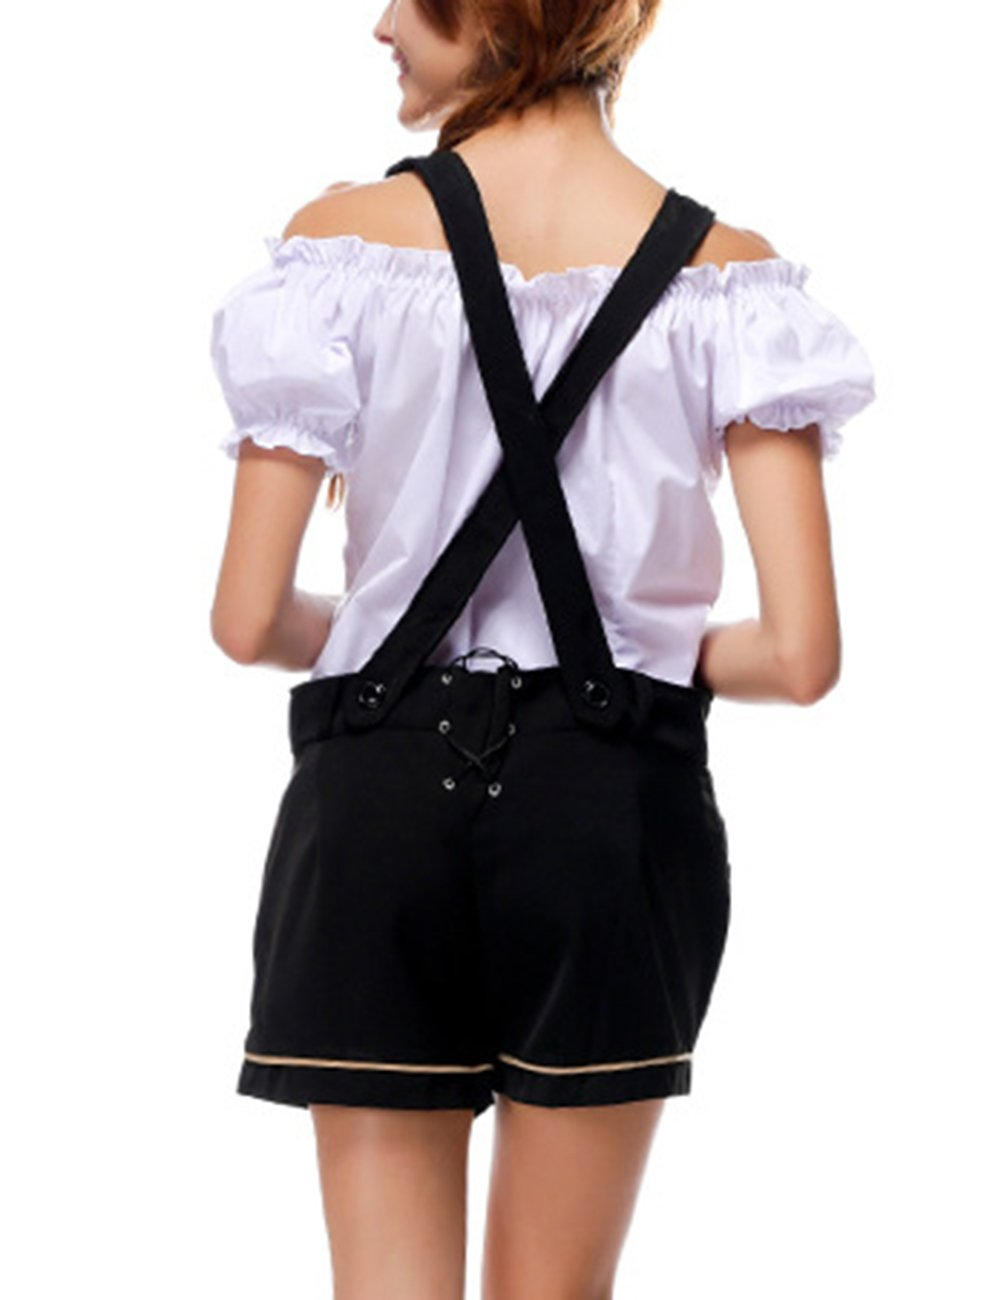 Yiwa Oktoberfest Costumes Women Classic Retro Costumes Sexy Charming Off Shoulder Beer Festival Tops + Suspenders Pants by Yiwa (Image #1)